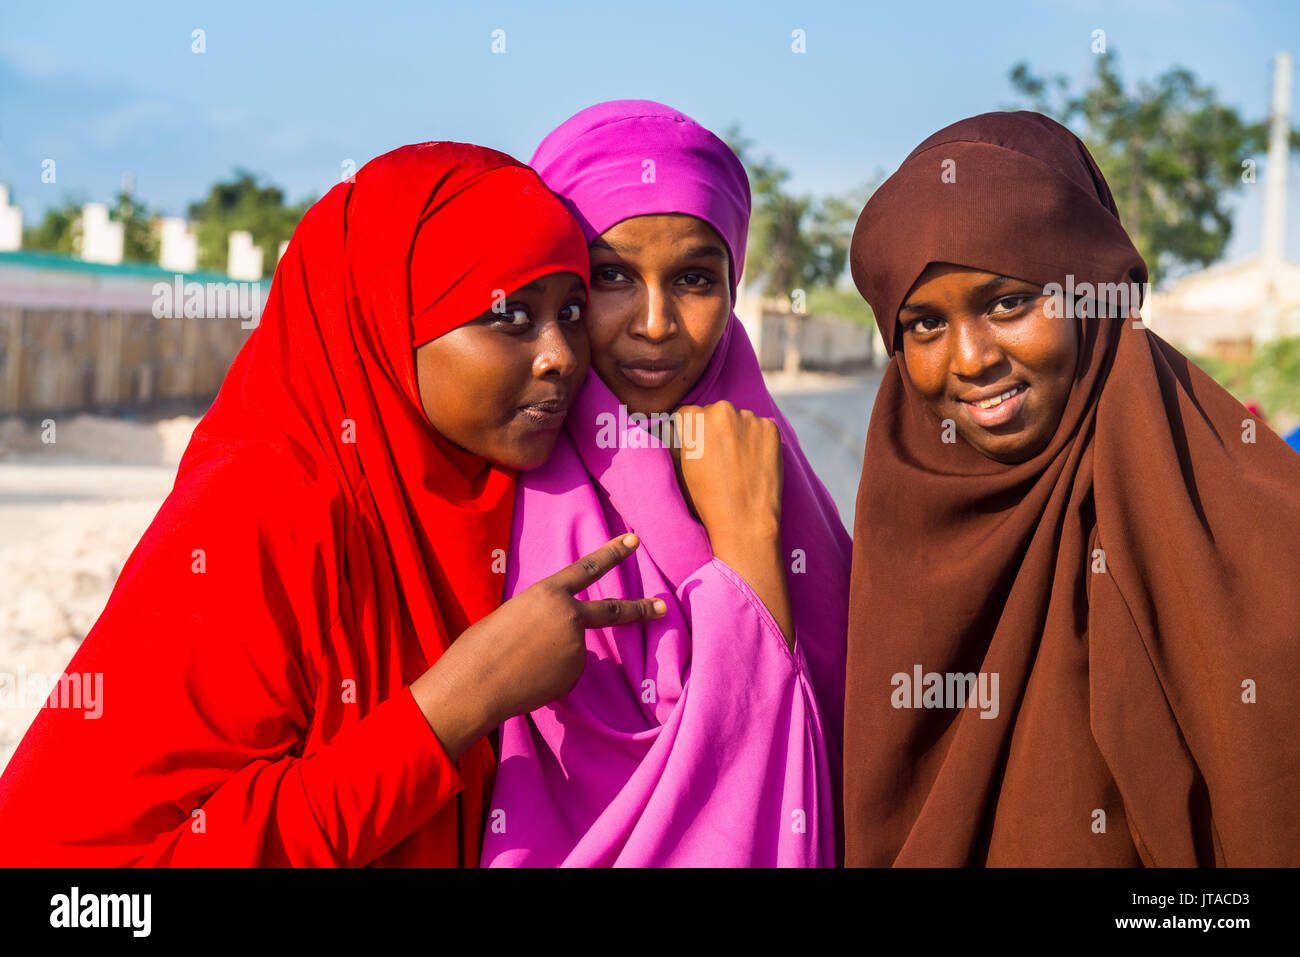 Colourfully dressed Muslim women in the coastal town of Berbera, Somaliland, Somalia, Africa - Stock Image